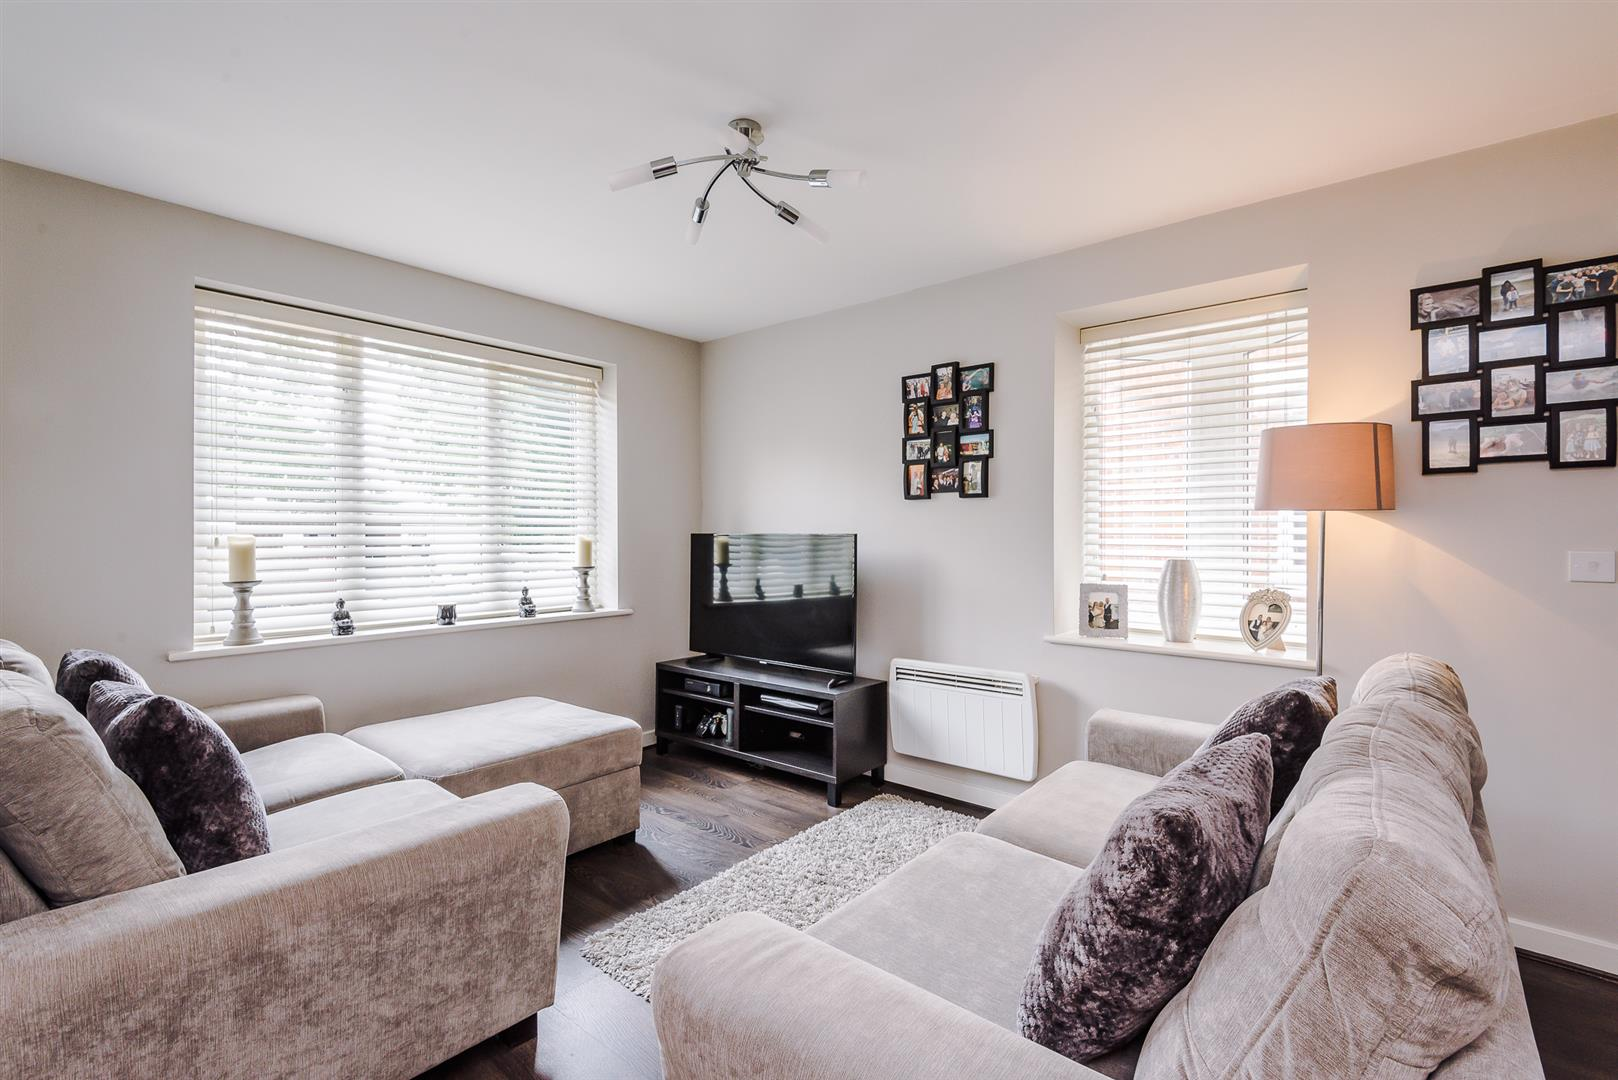 2 Bedroom Terraced House Sale Agreed Image 1